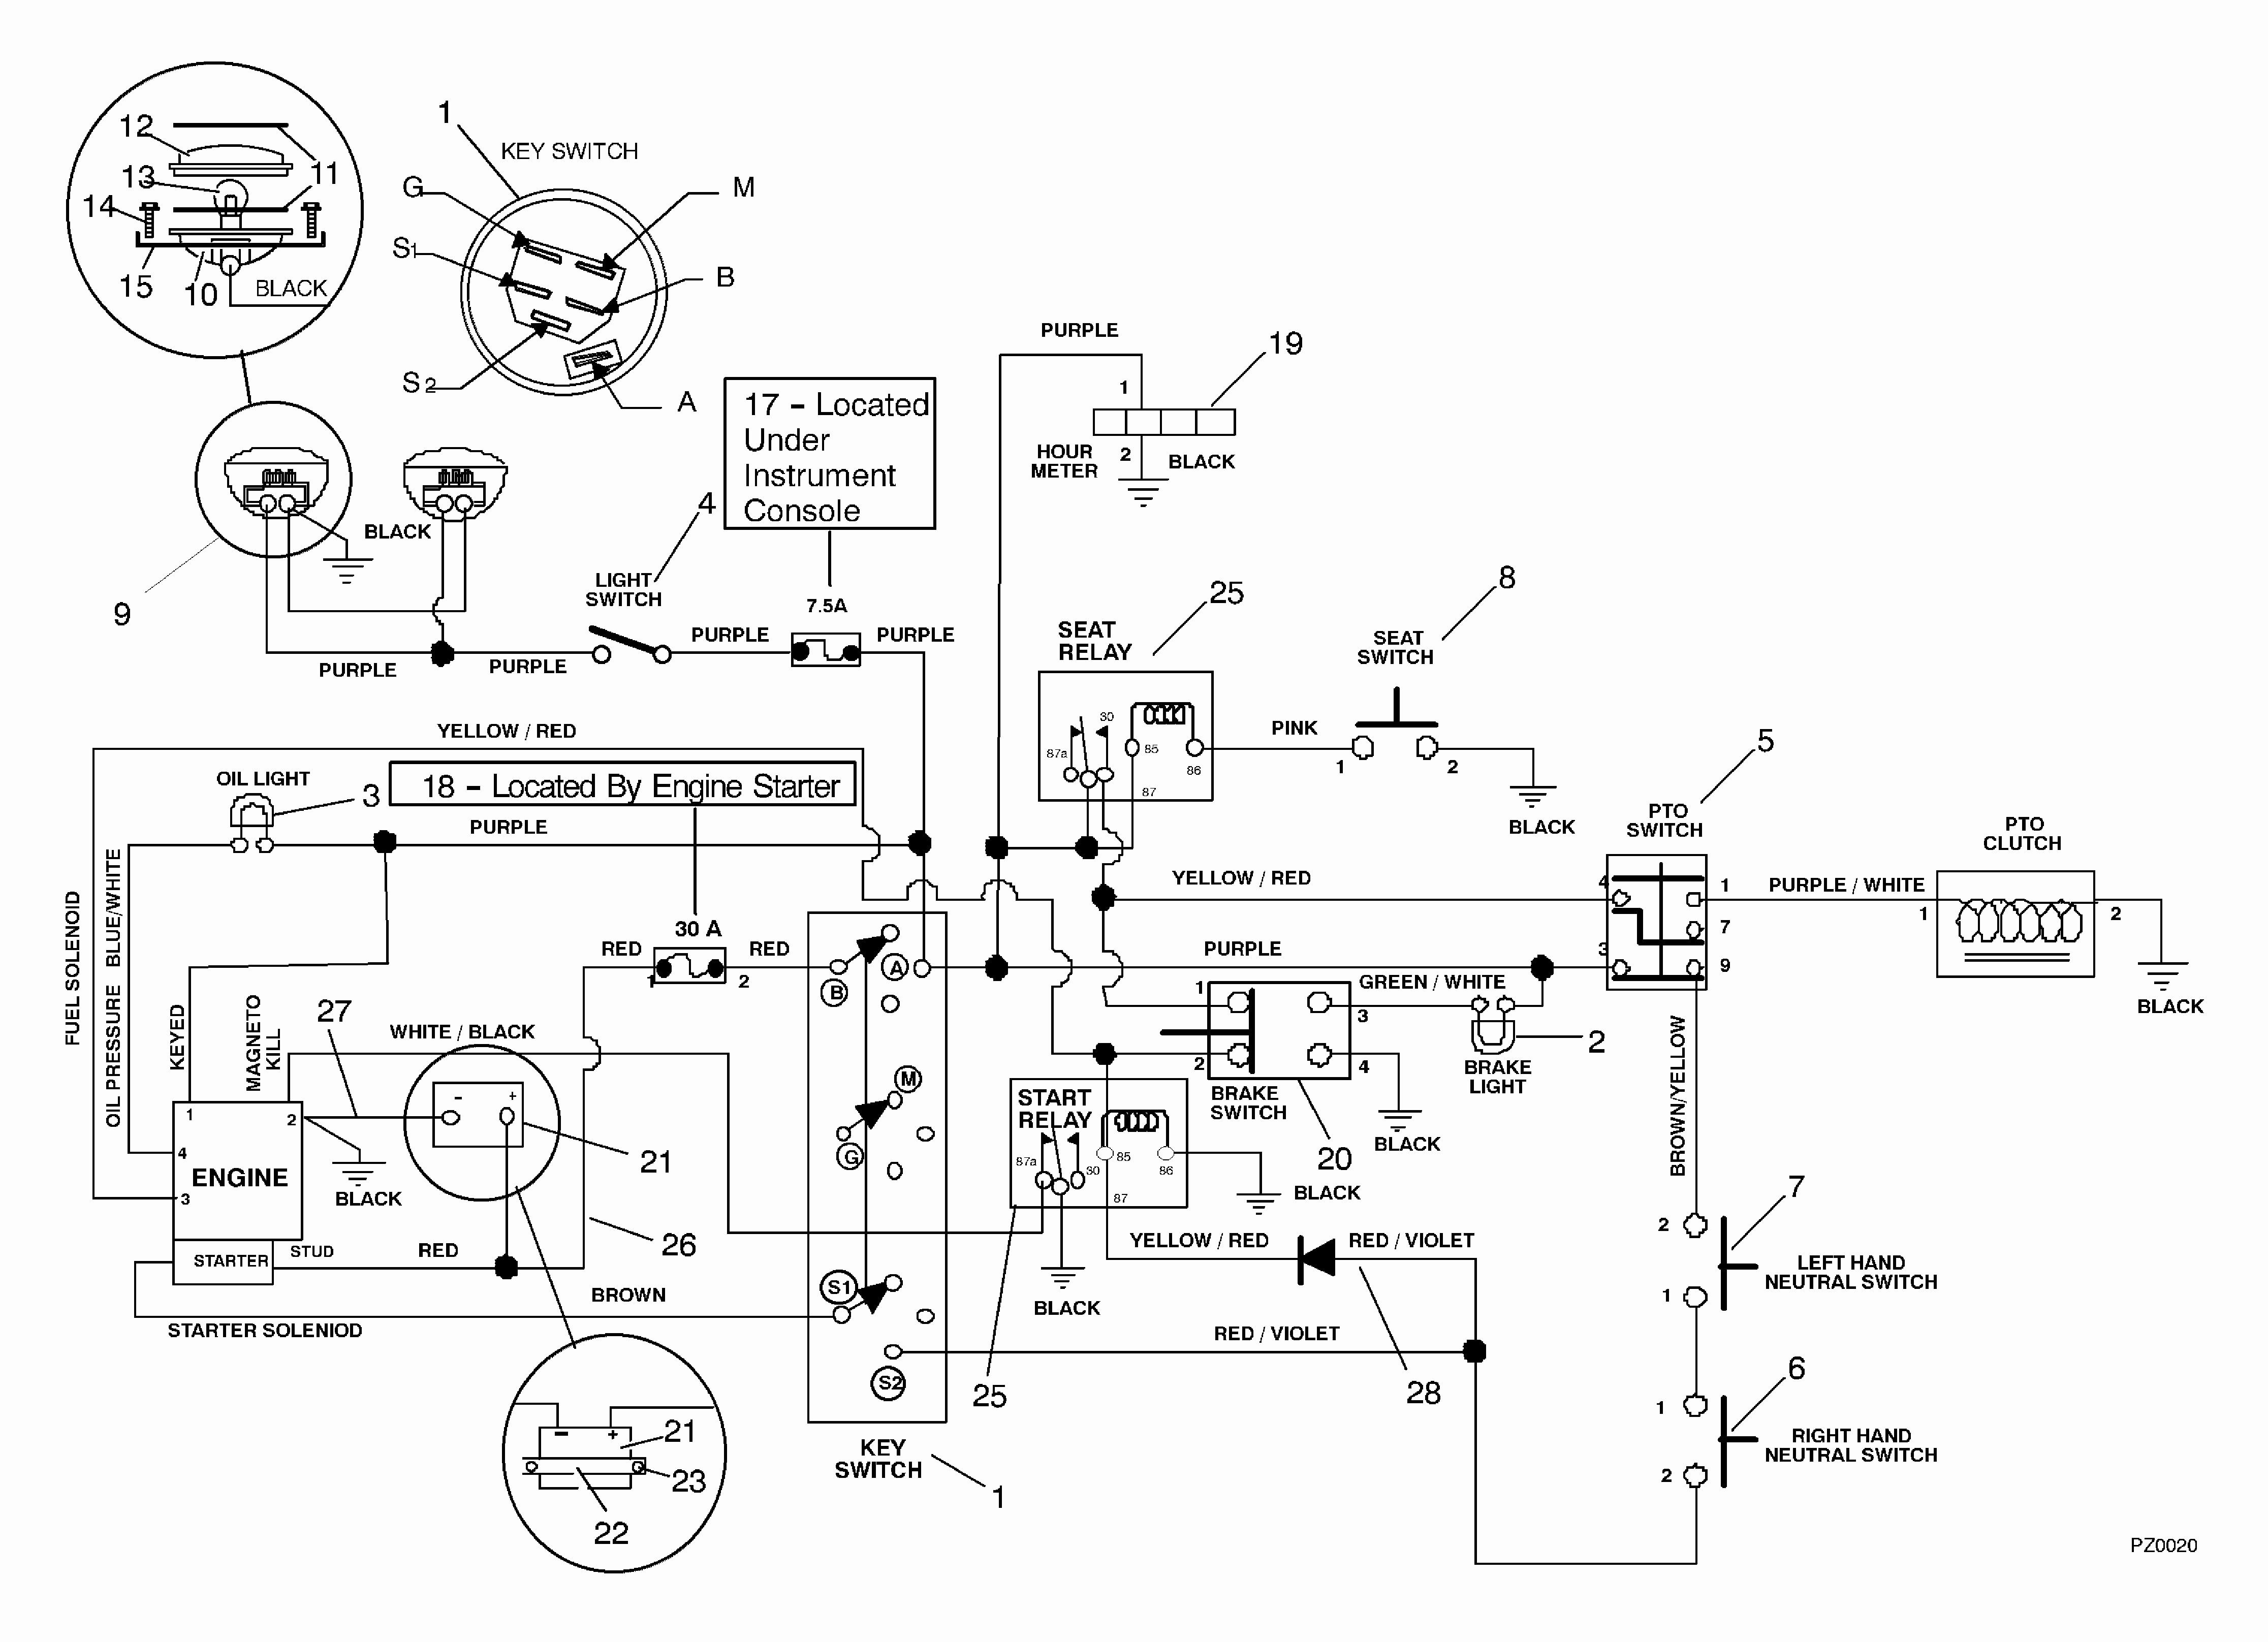 caterpillar 3406 engine wiring diagram free download kohler 15 hp engine wiring diagram free download kohler generator wiring diagram download